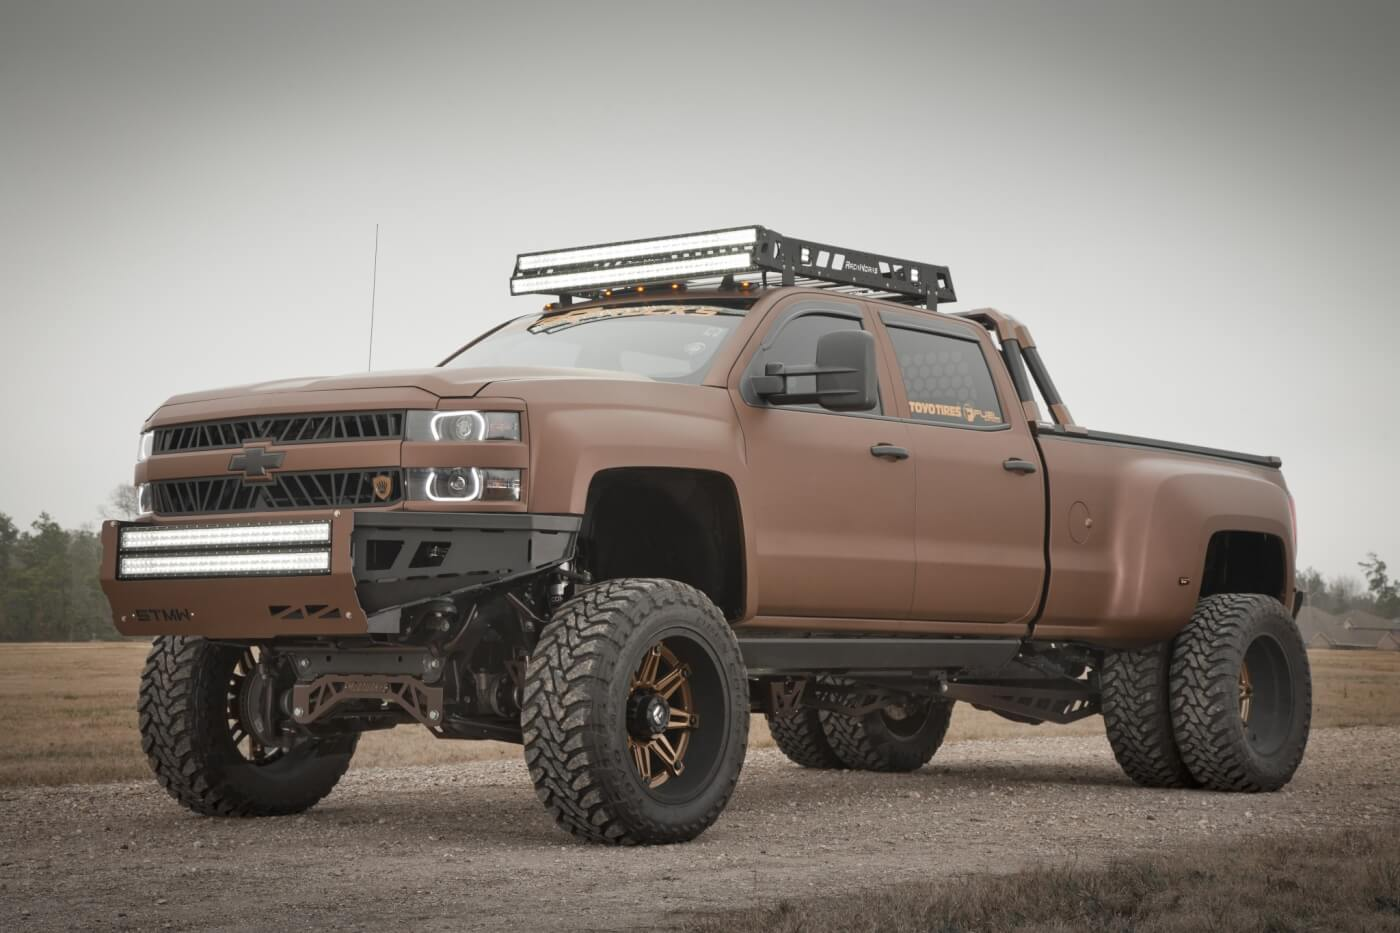 Starting life as an off-the-lot 2015 Chevy Silverado 3500HD, this truck has solid roots. Robbie Bryant developed a concept to take it to the next level, and with some help from a few friends in the business, built this unique 4x4.